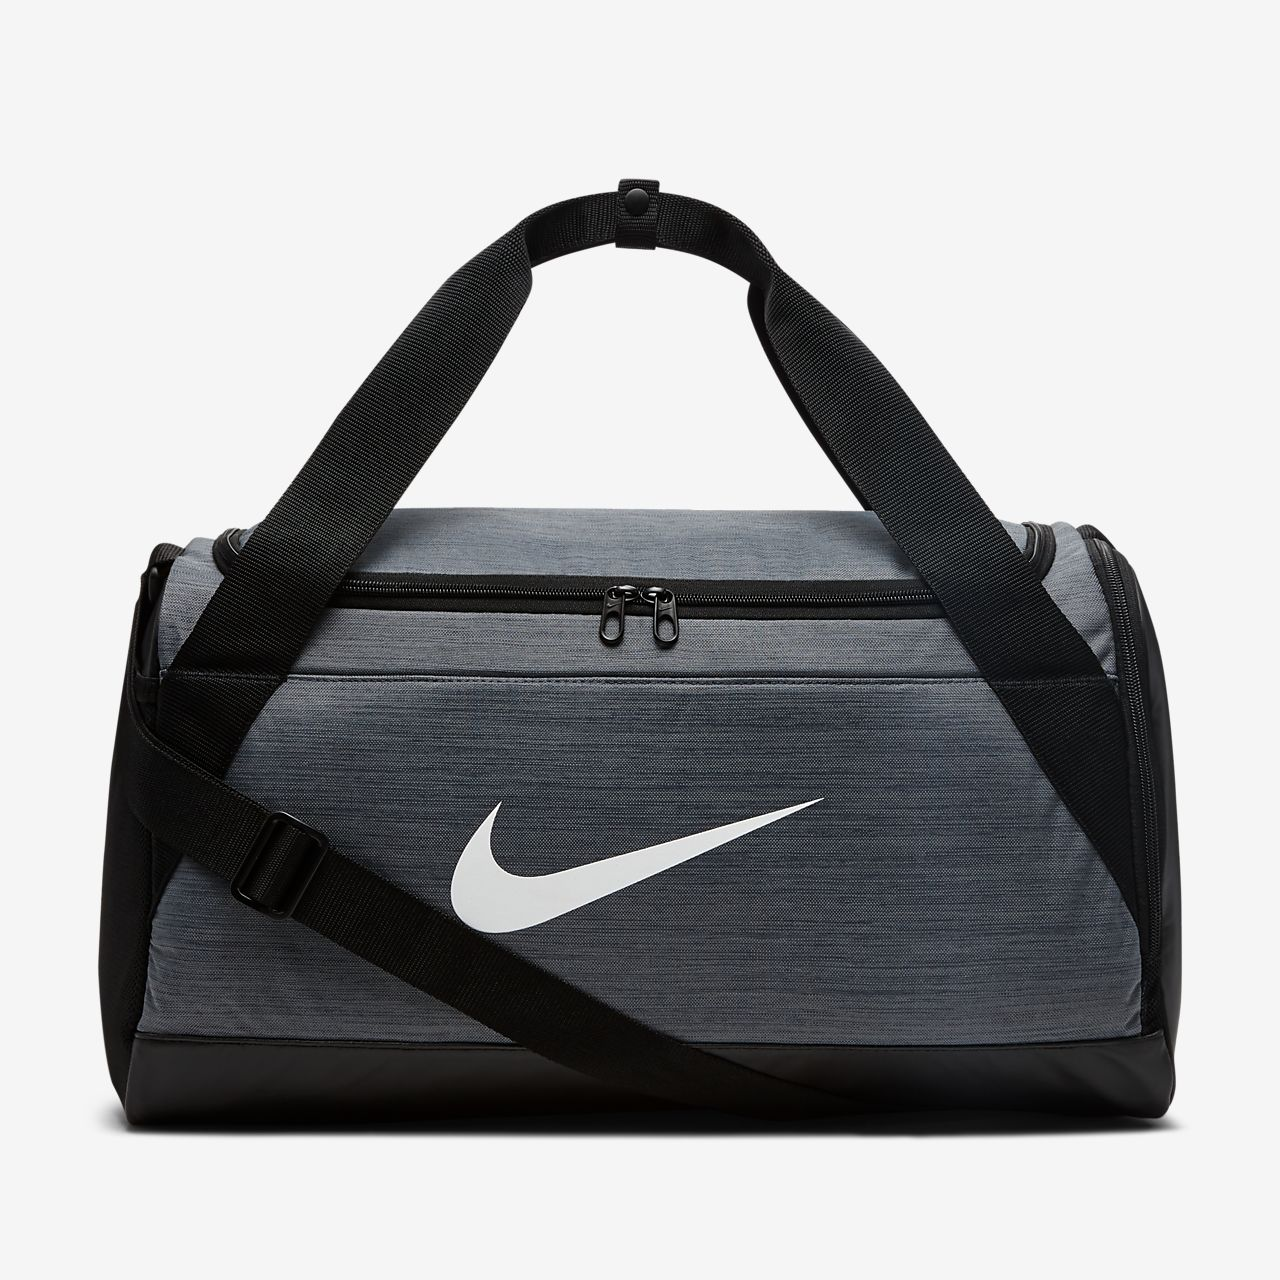 80d2bb6cbb Nike Brasilia (Small) Training Duffel Bag. Nike.com GB